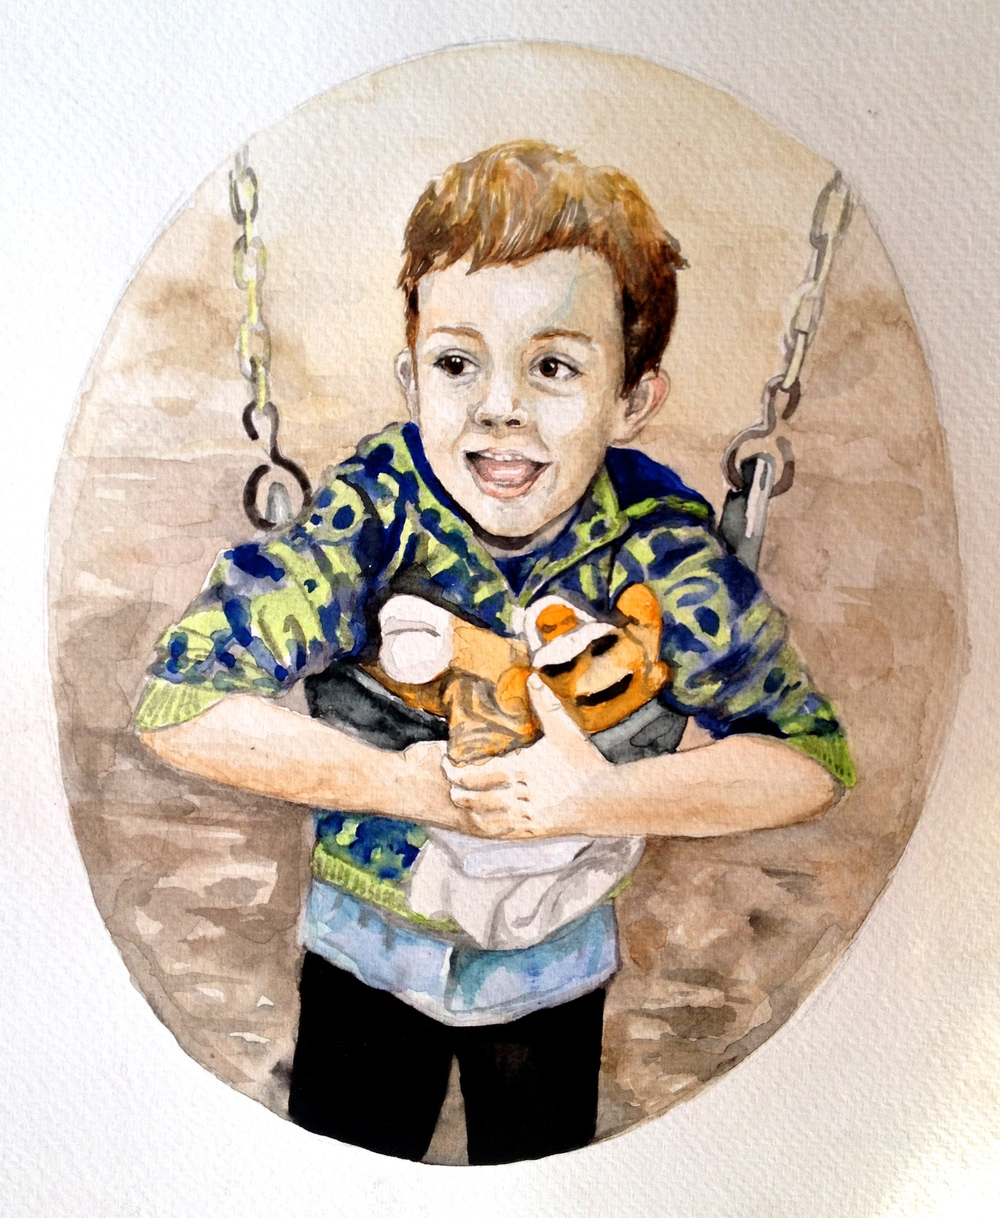 locke in watercolor, for meghan and nick